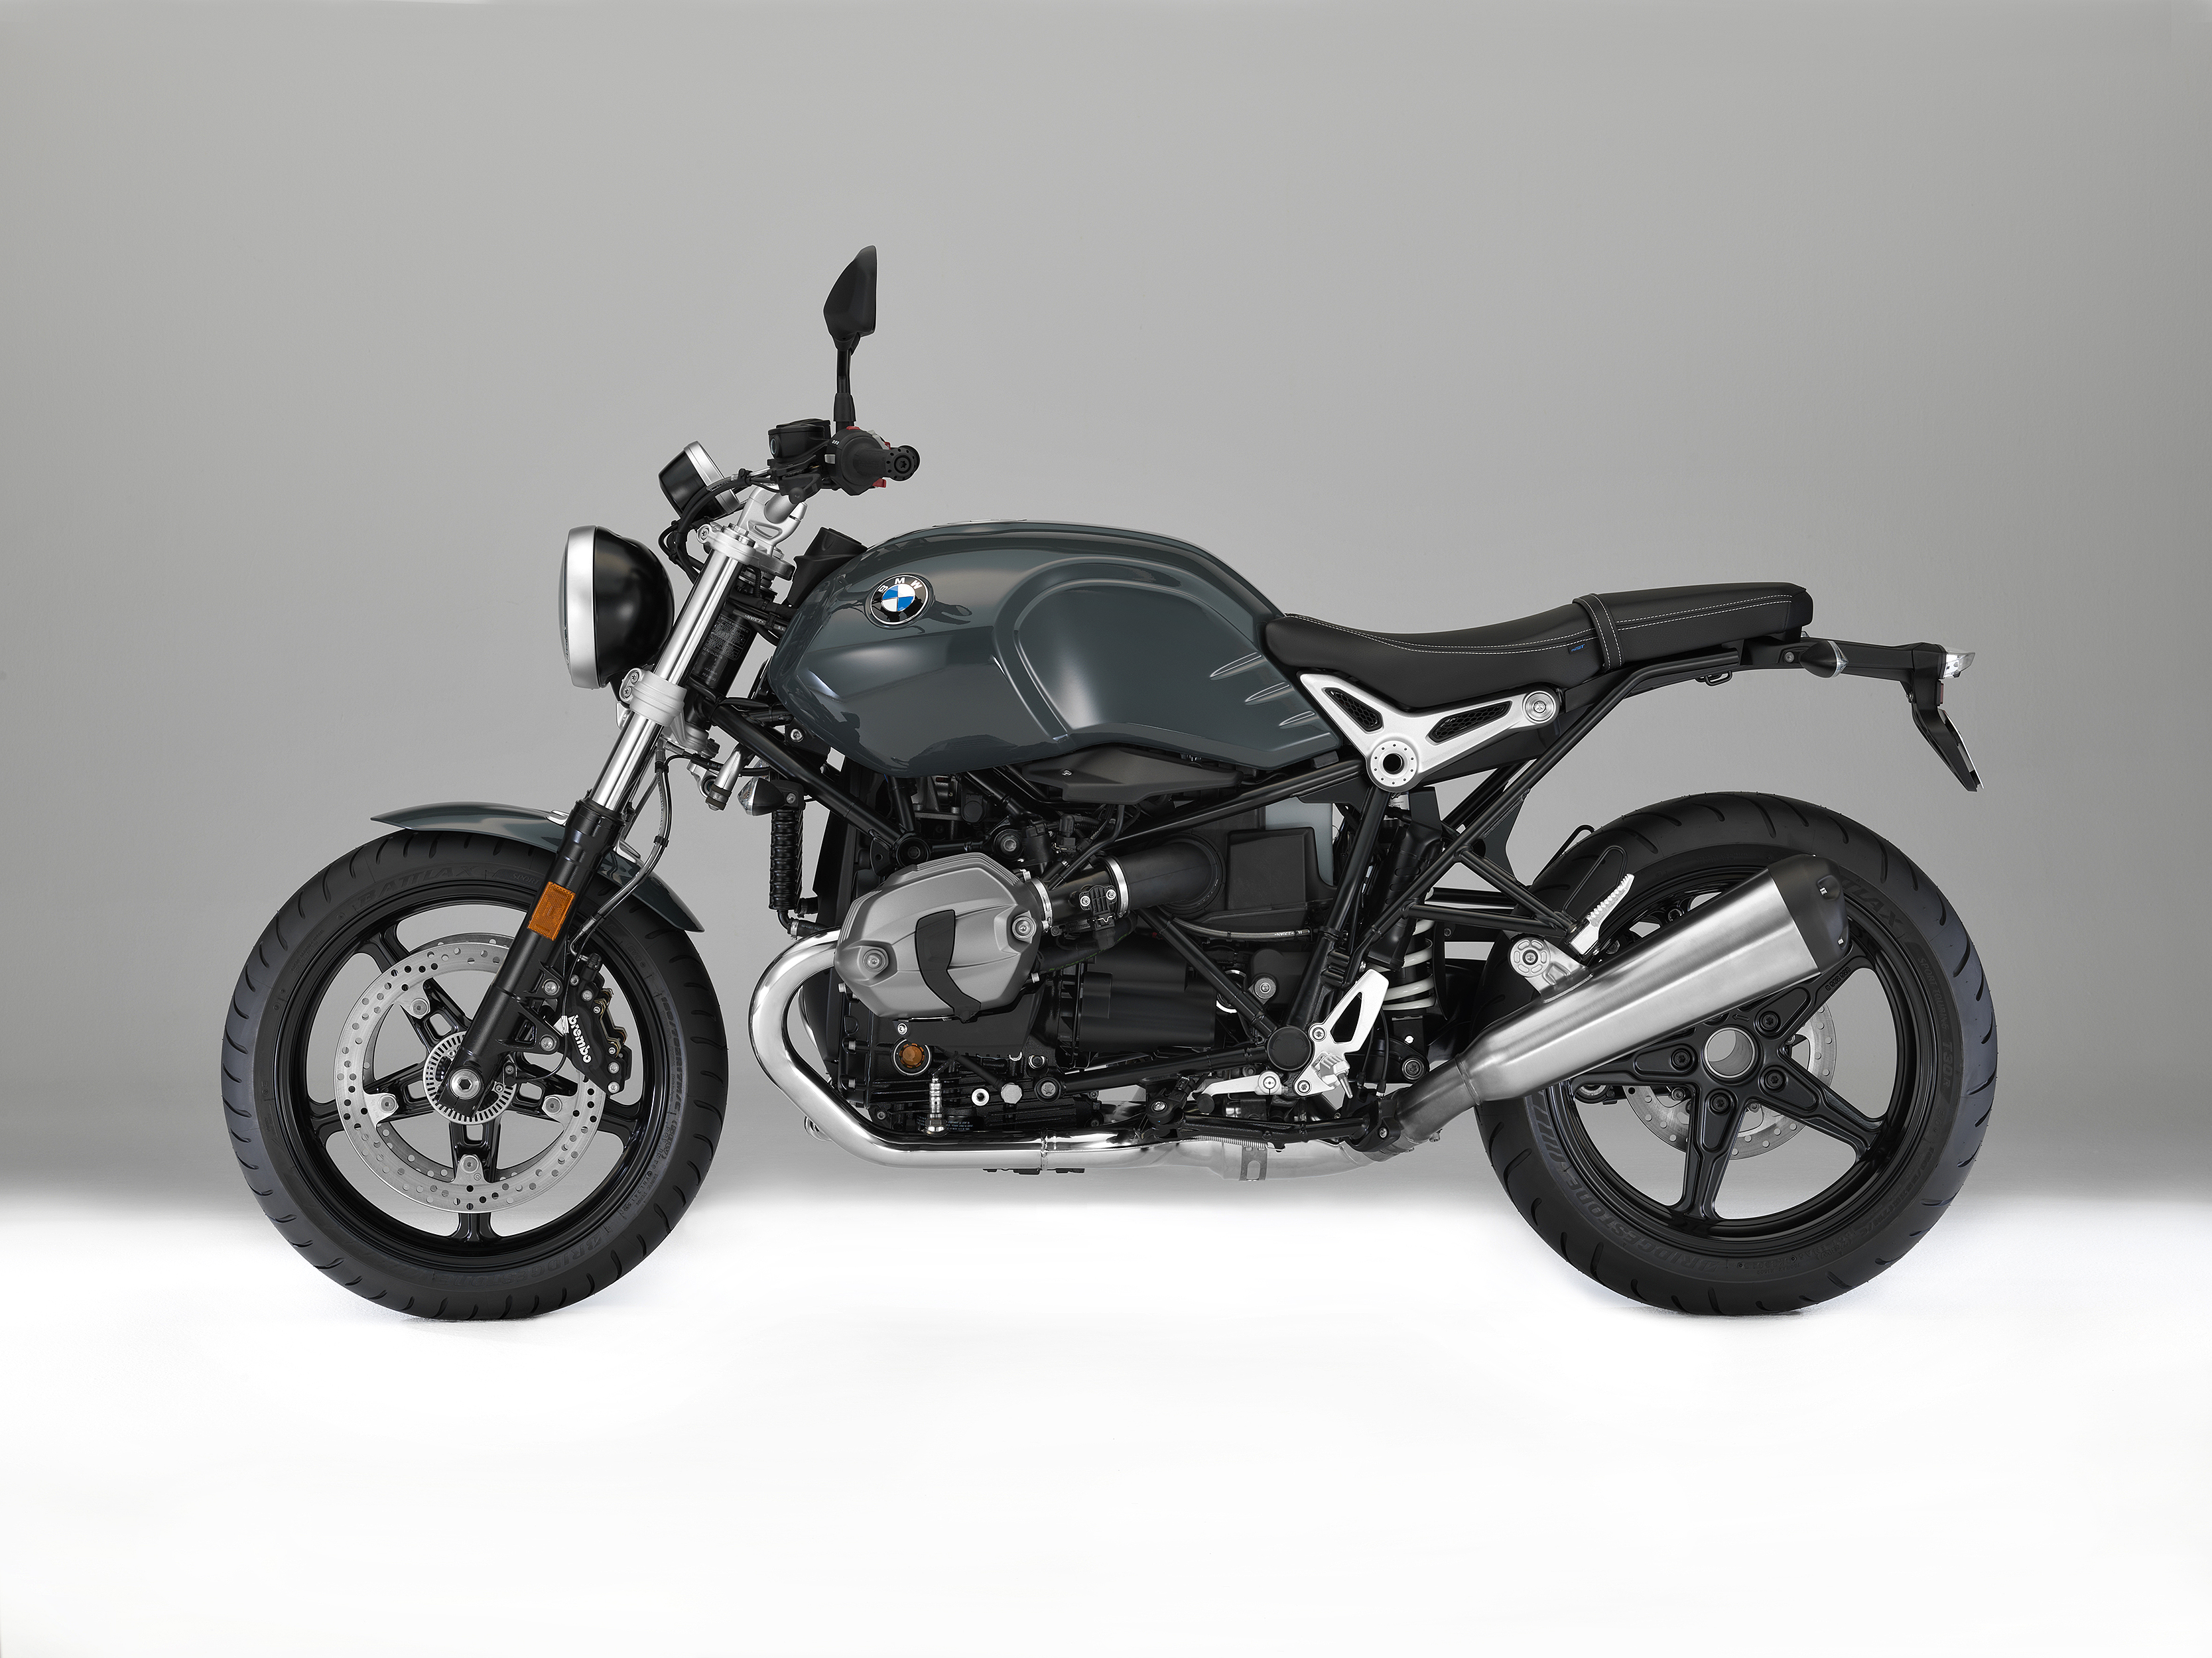 BMW reveals two new members of R nineT family